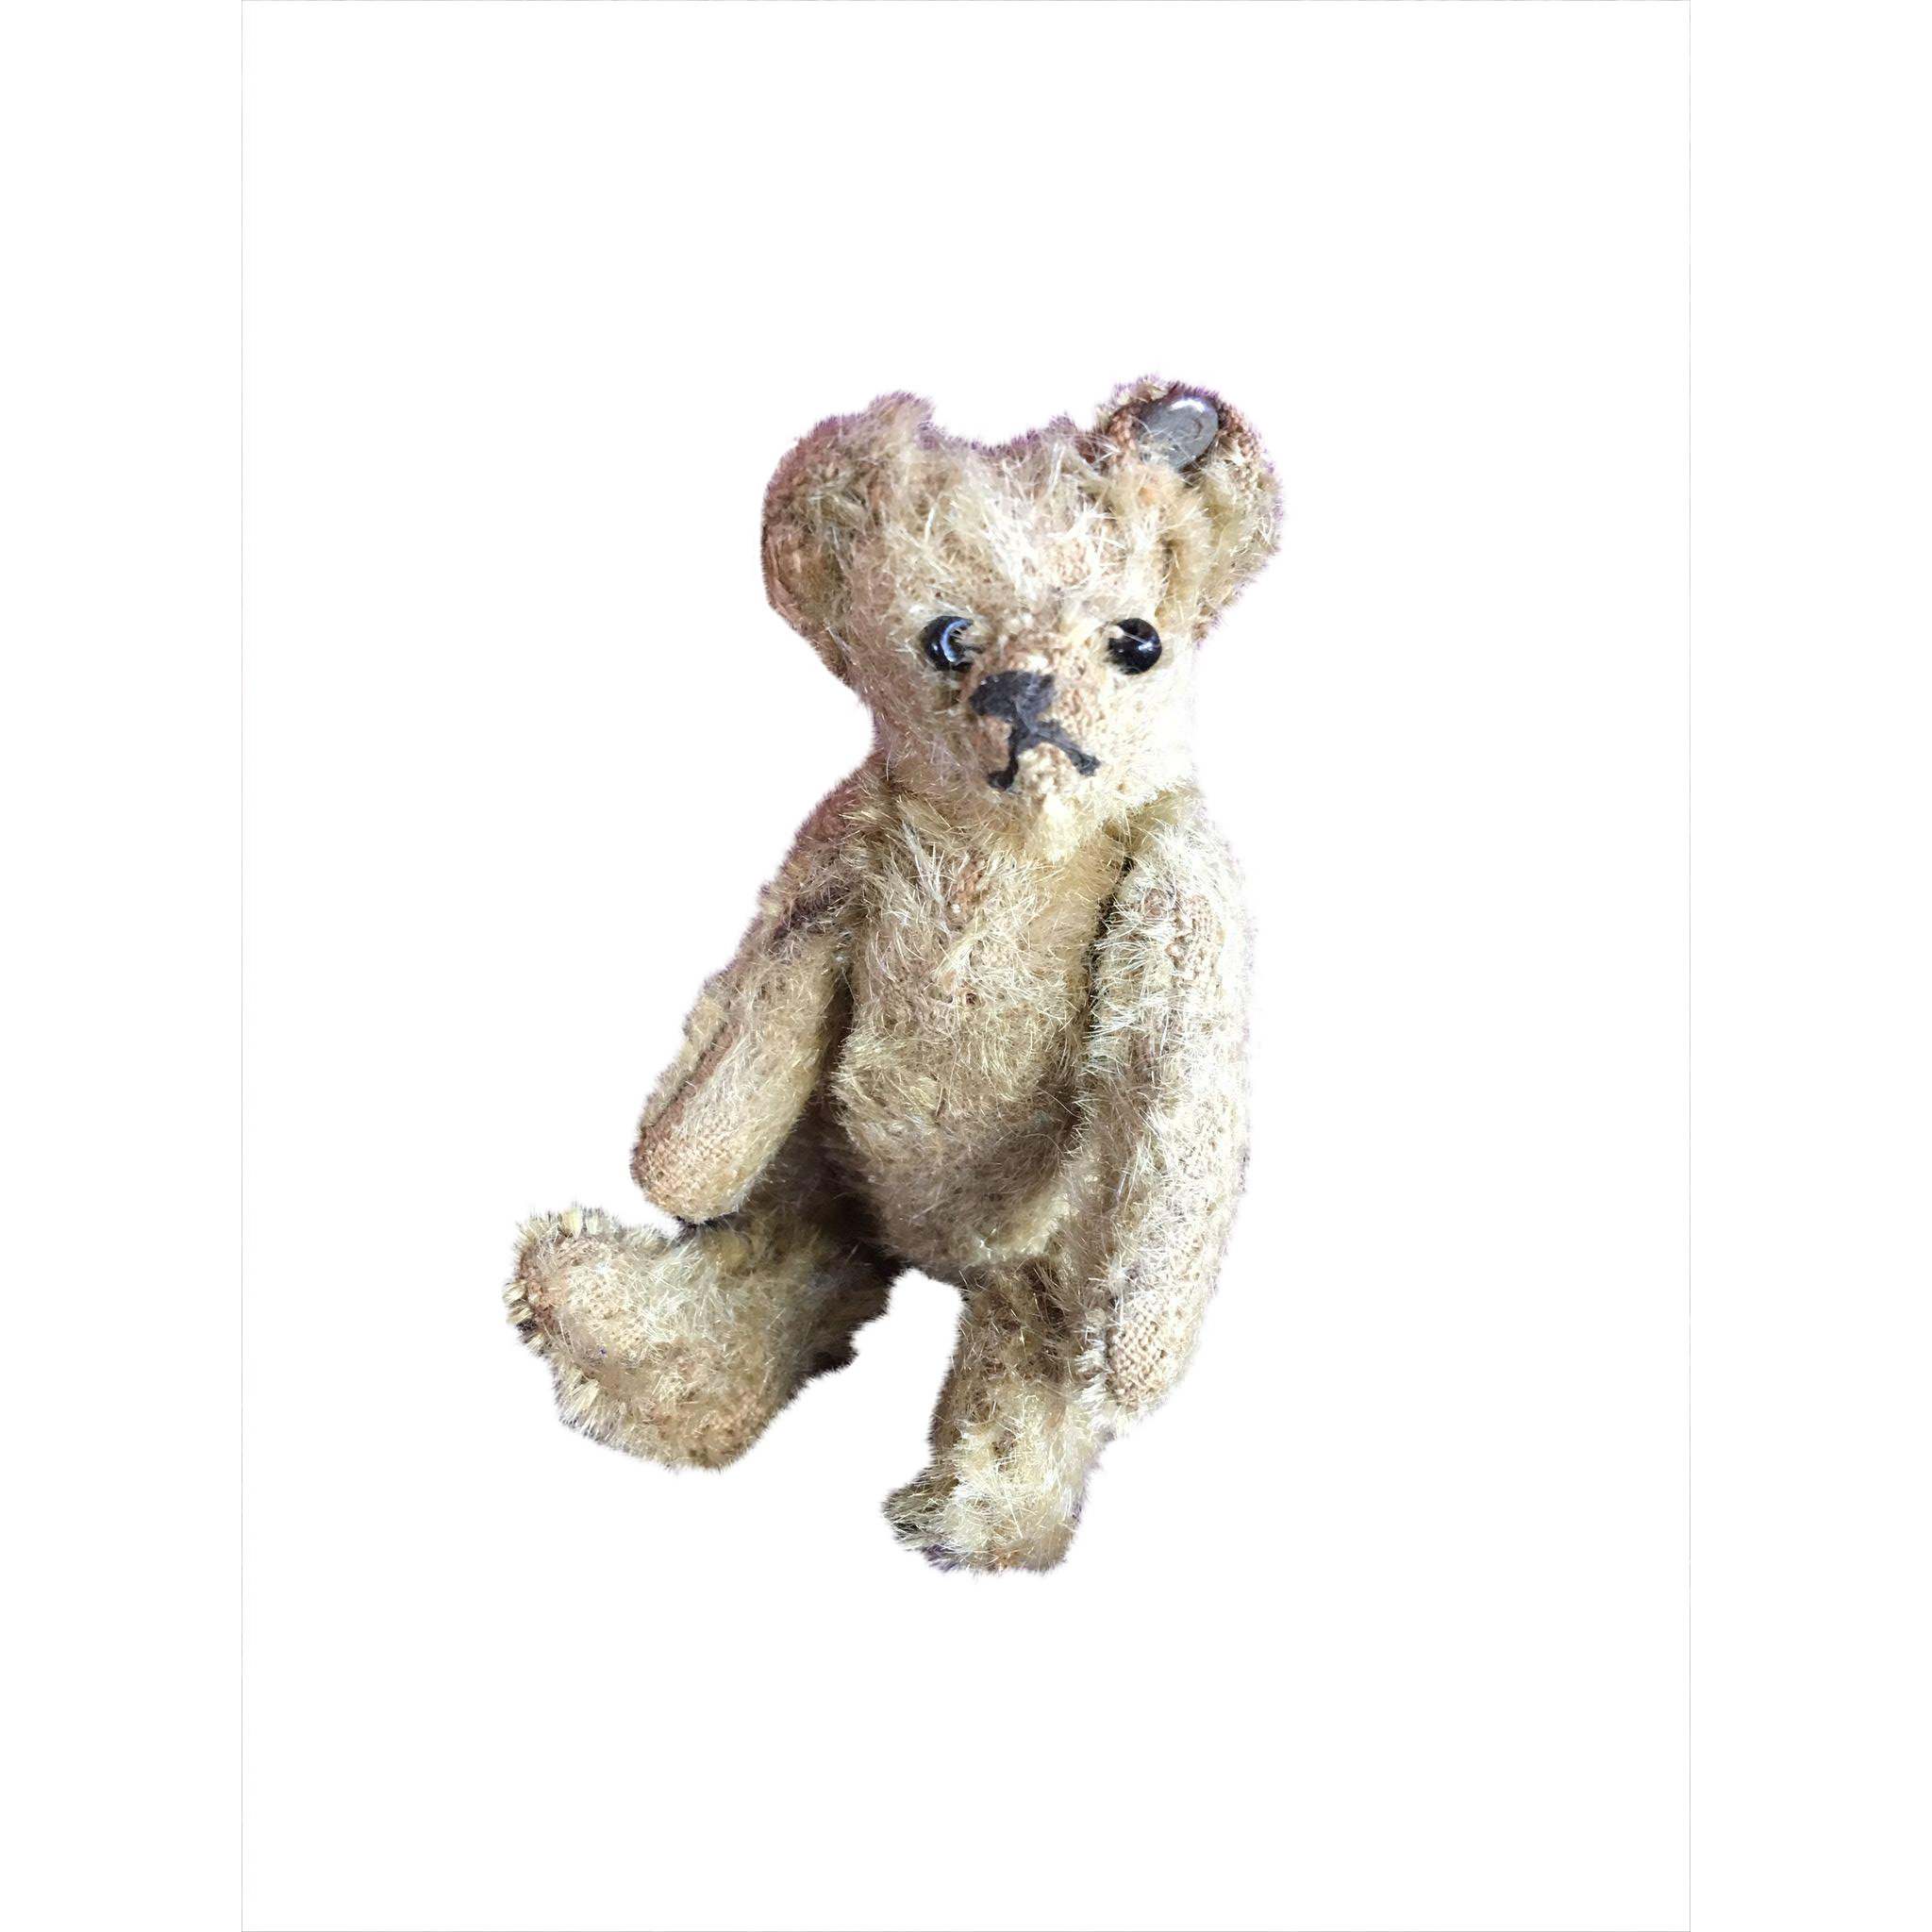 Adorable Miniature Steiff Teddy Bear with Button